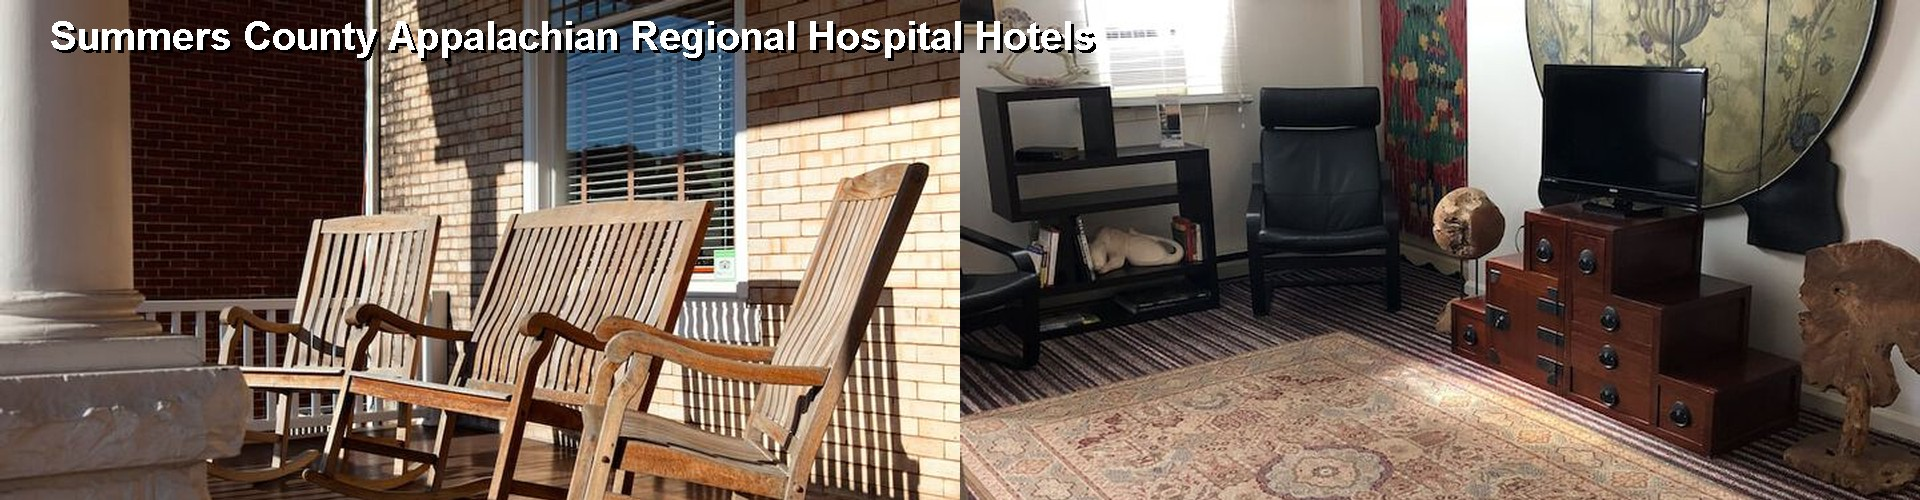 5 Best Hotels near Summers County Appalachian Regional Hospital